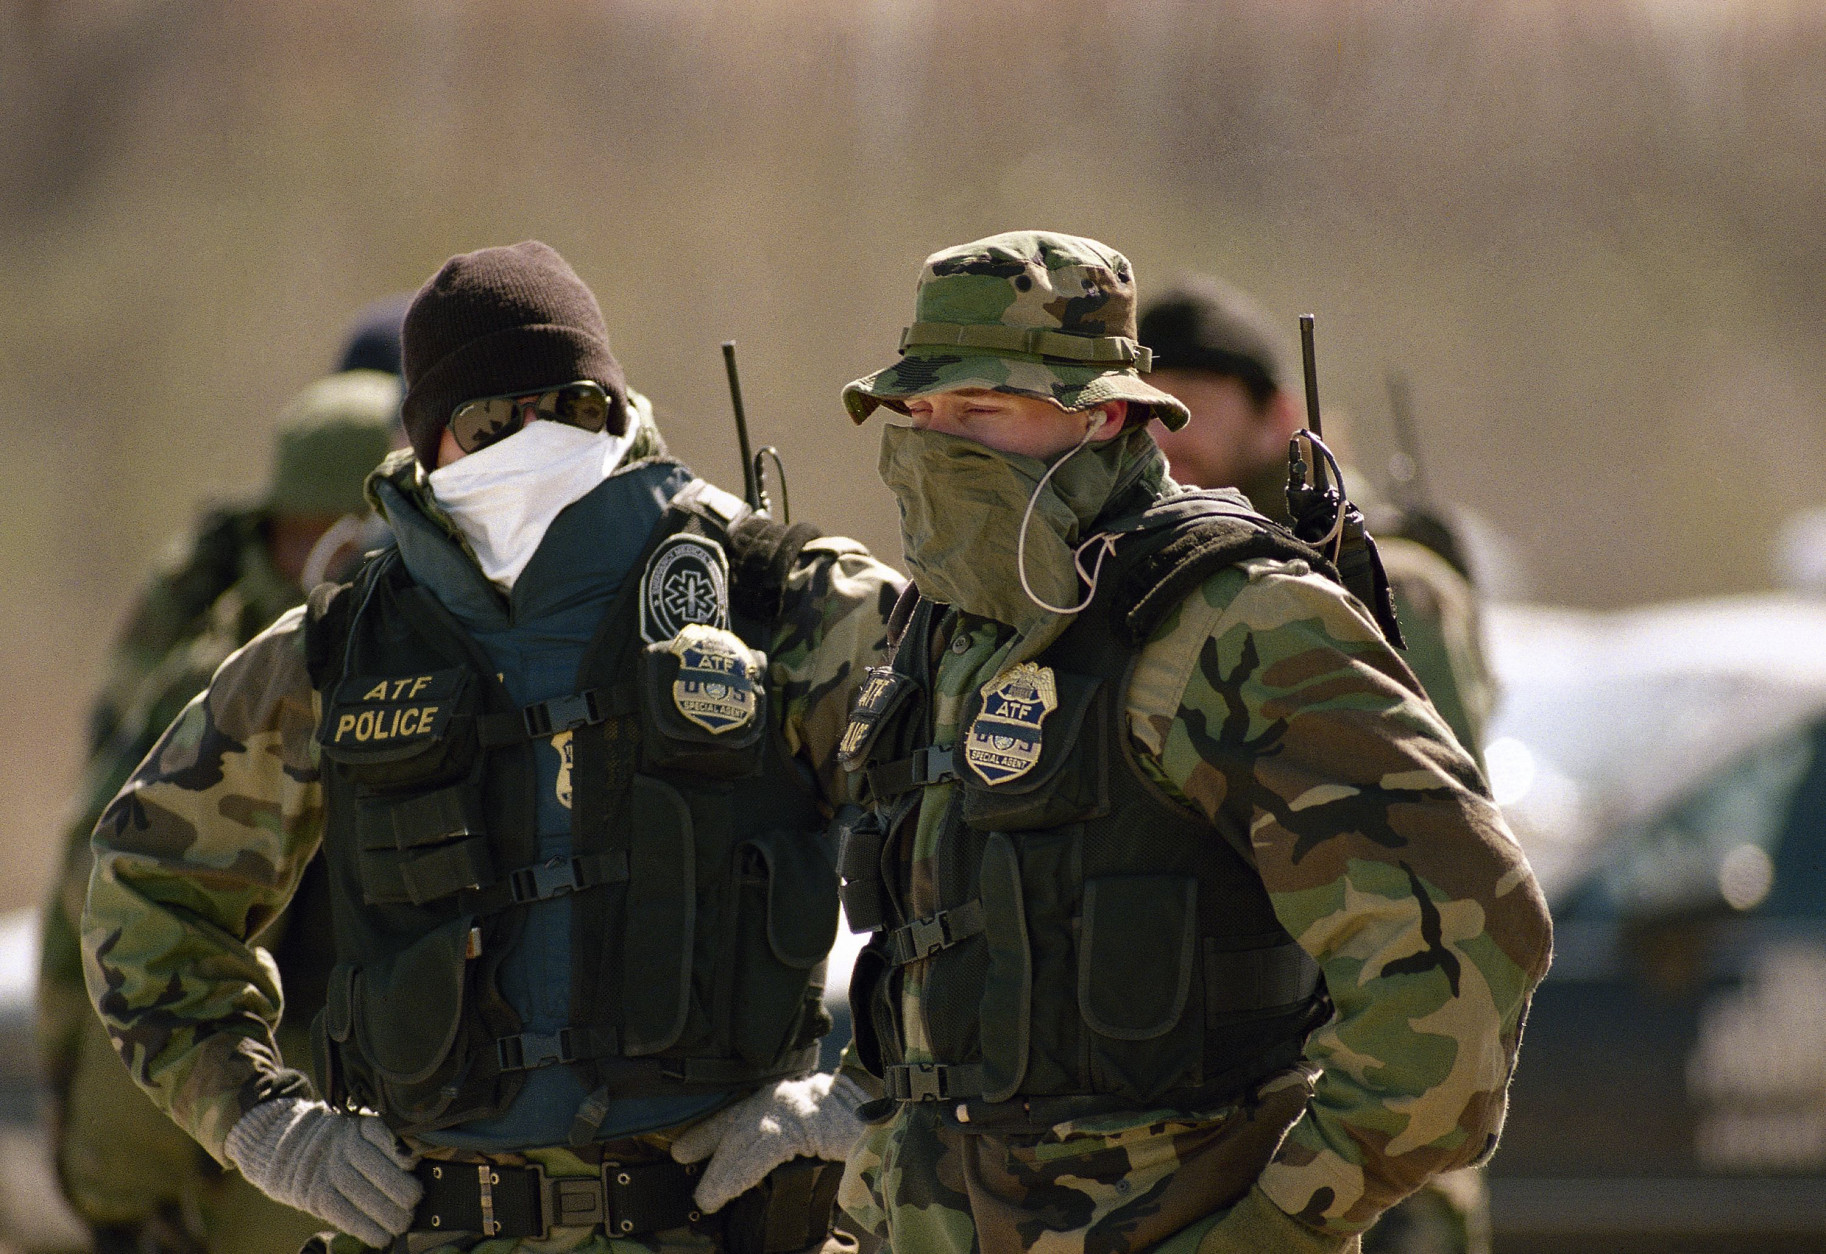 Two Alcohol, Tobacco and Firearms agents cover their faces to guard against the cold as a major cold front moved through central Texas on Saturday, March 13, 1993. They are guarding the Branch Davidian compound as the standoff with the religious cult enters its 14th day. (AP Photo/David Longstreath)